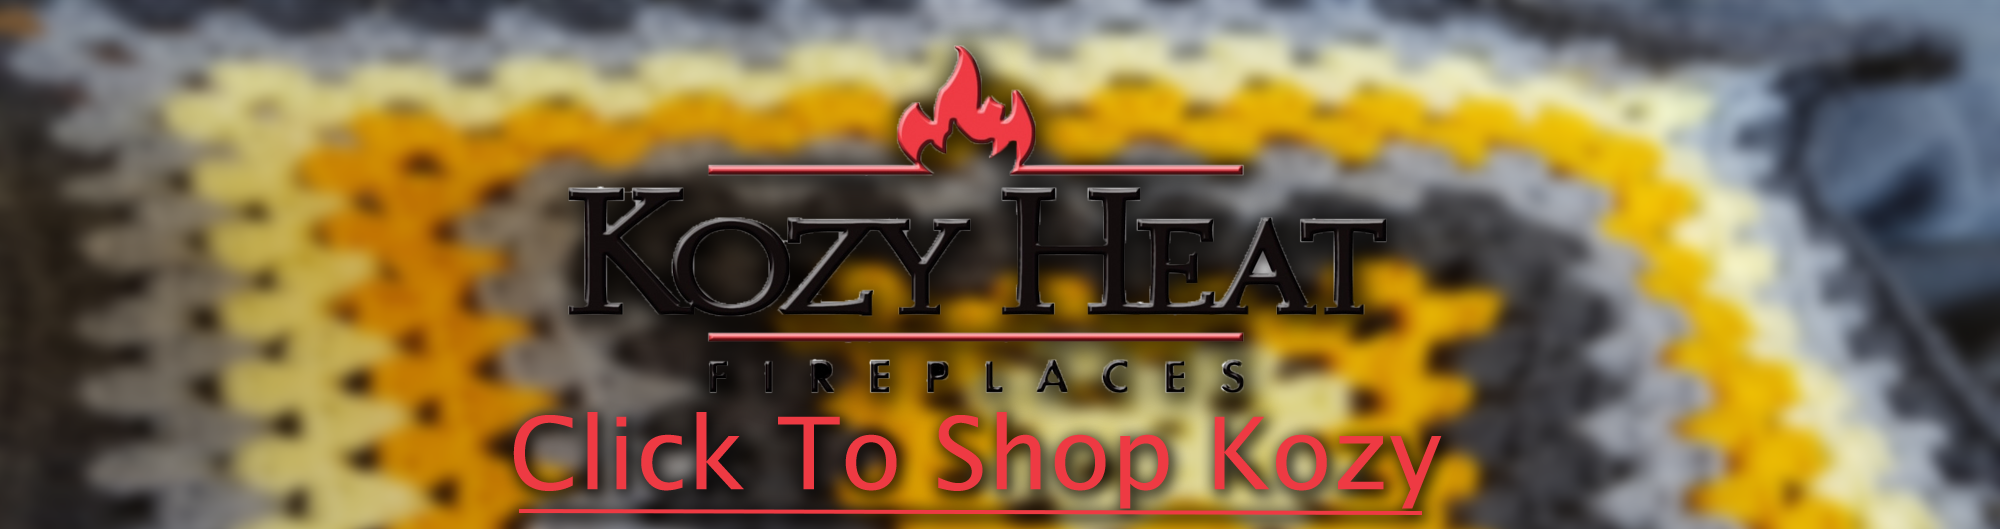 Kozy Heat Gas Inserts